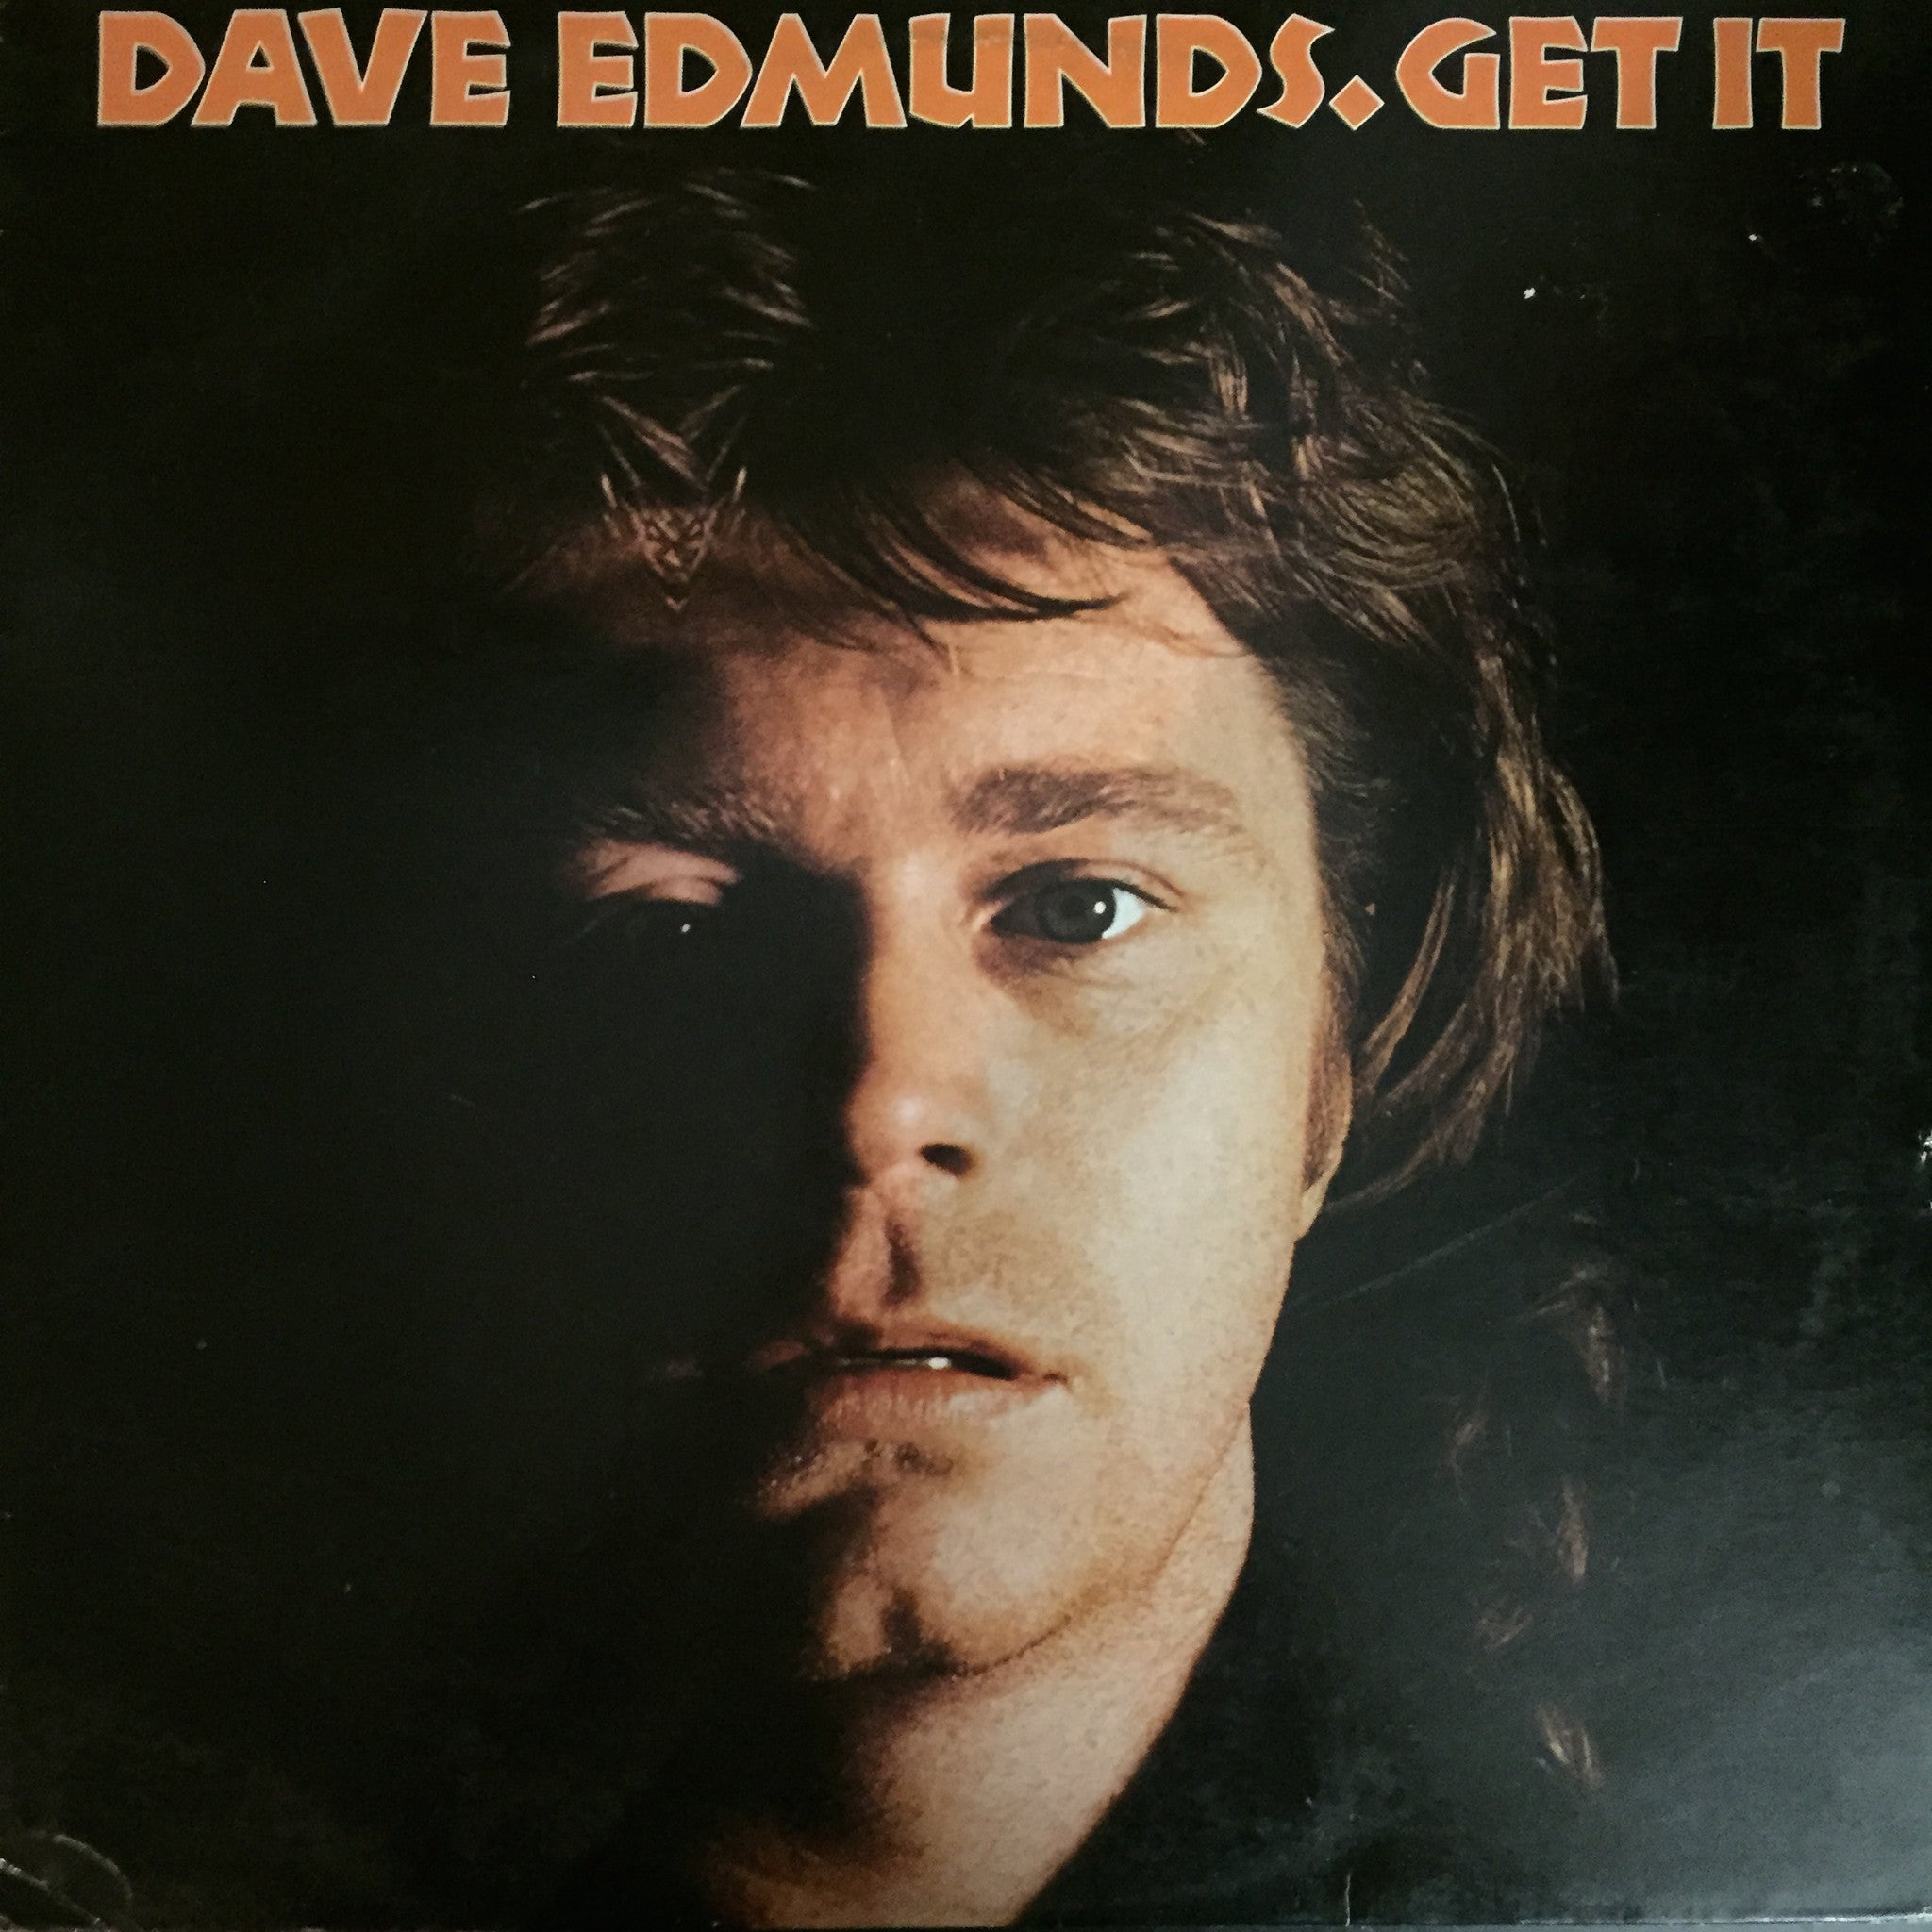 Dave Edmunds - Get It LP (SS 8418)